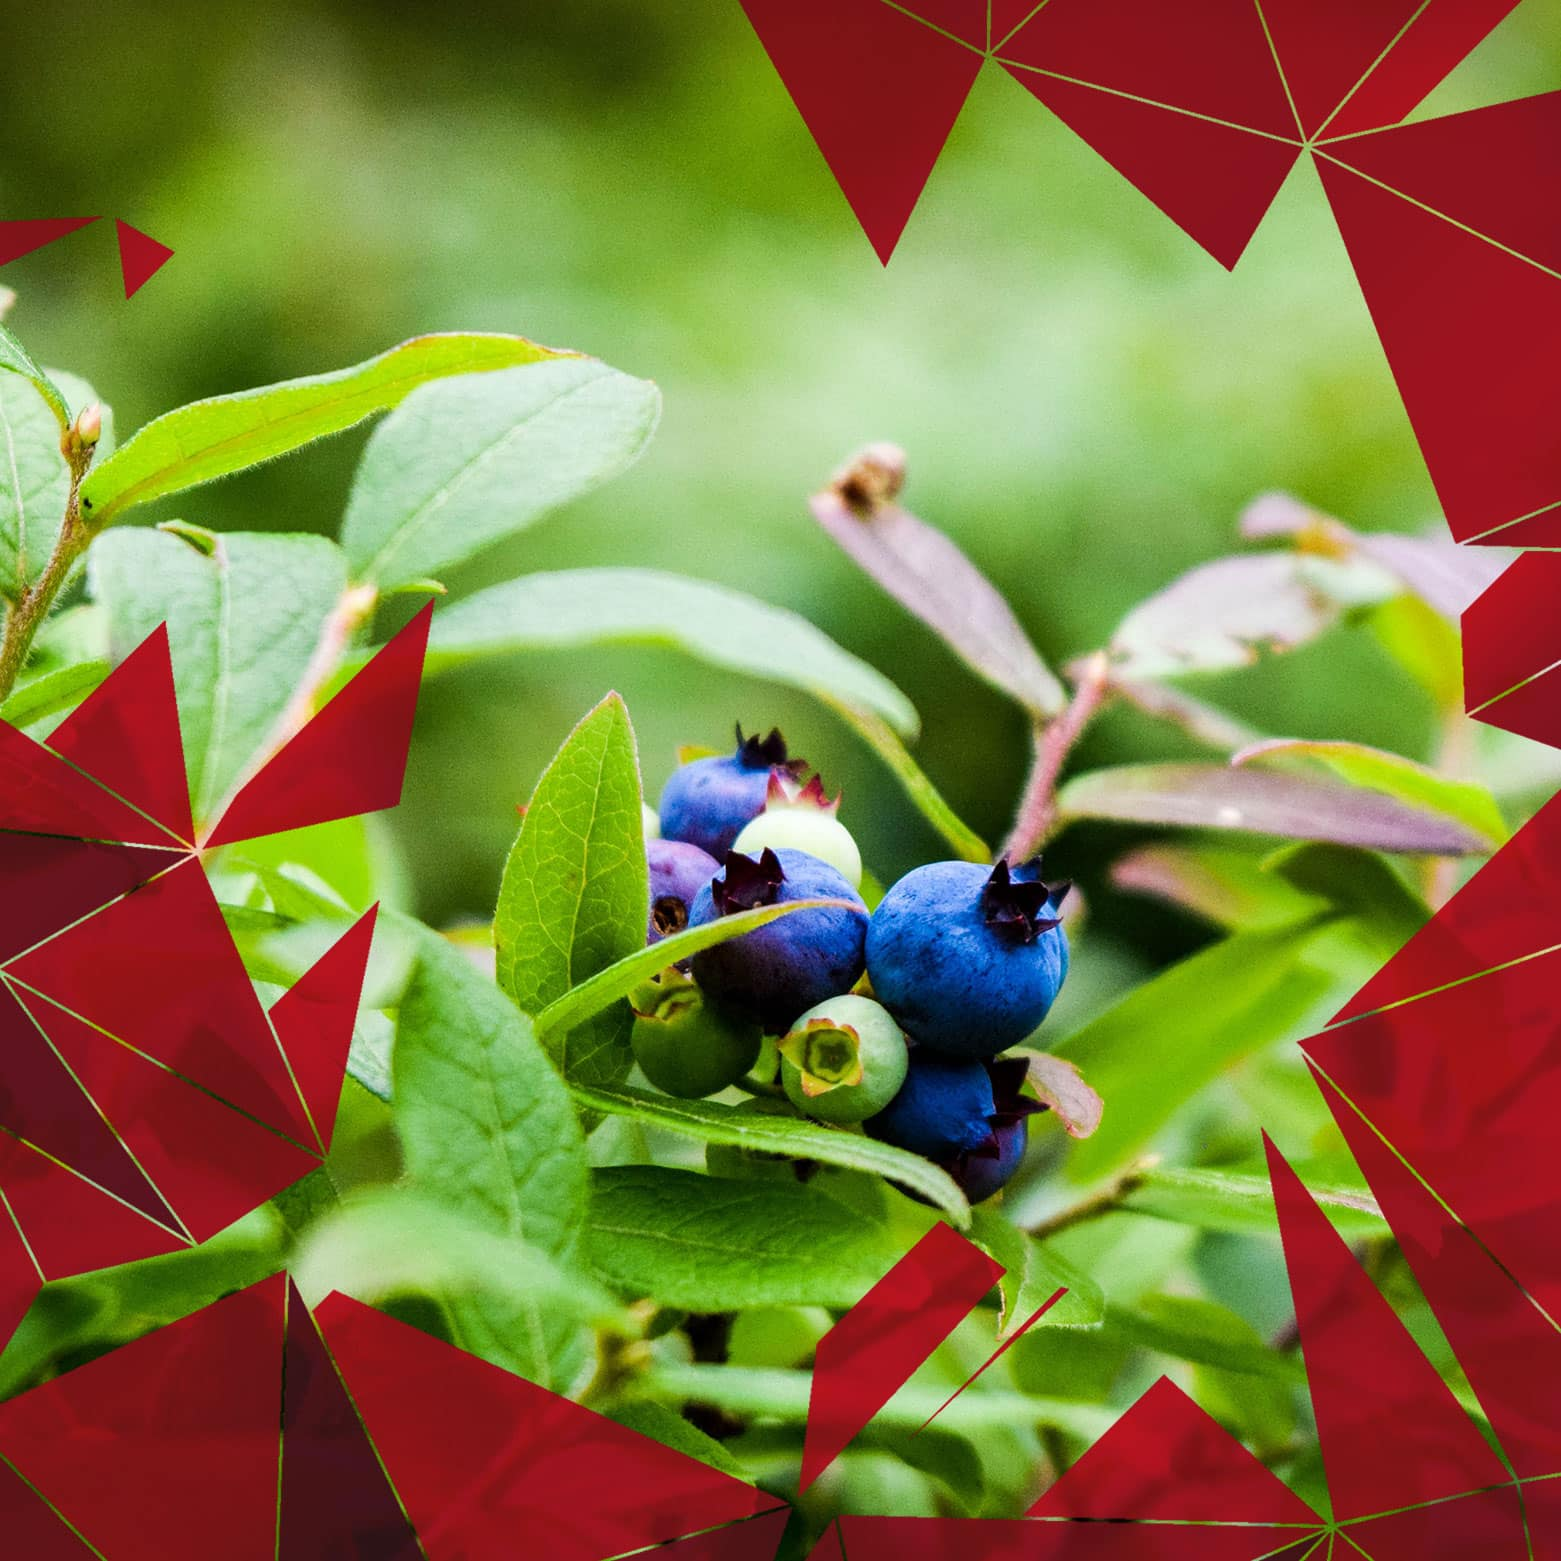 Image of a blueberry bush representing the Student Nutrition Program offered at OFIFC